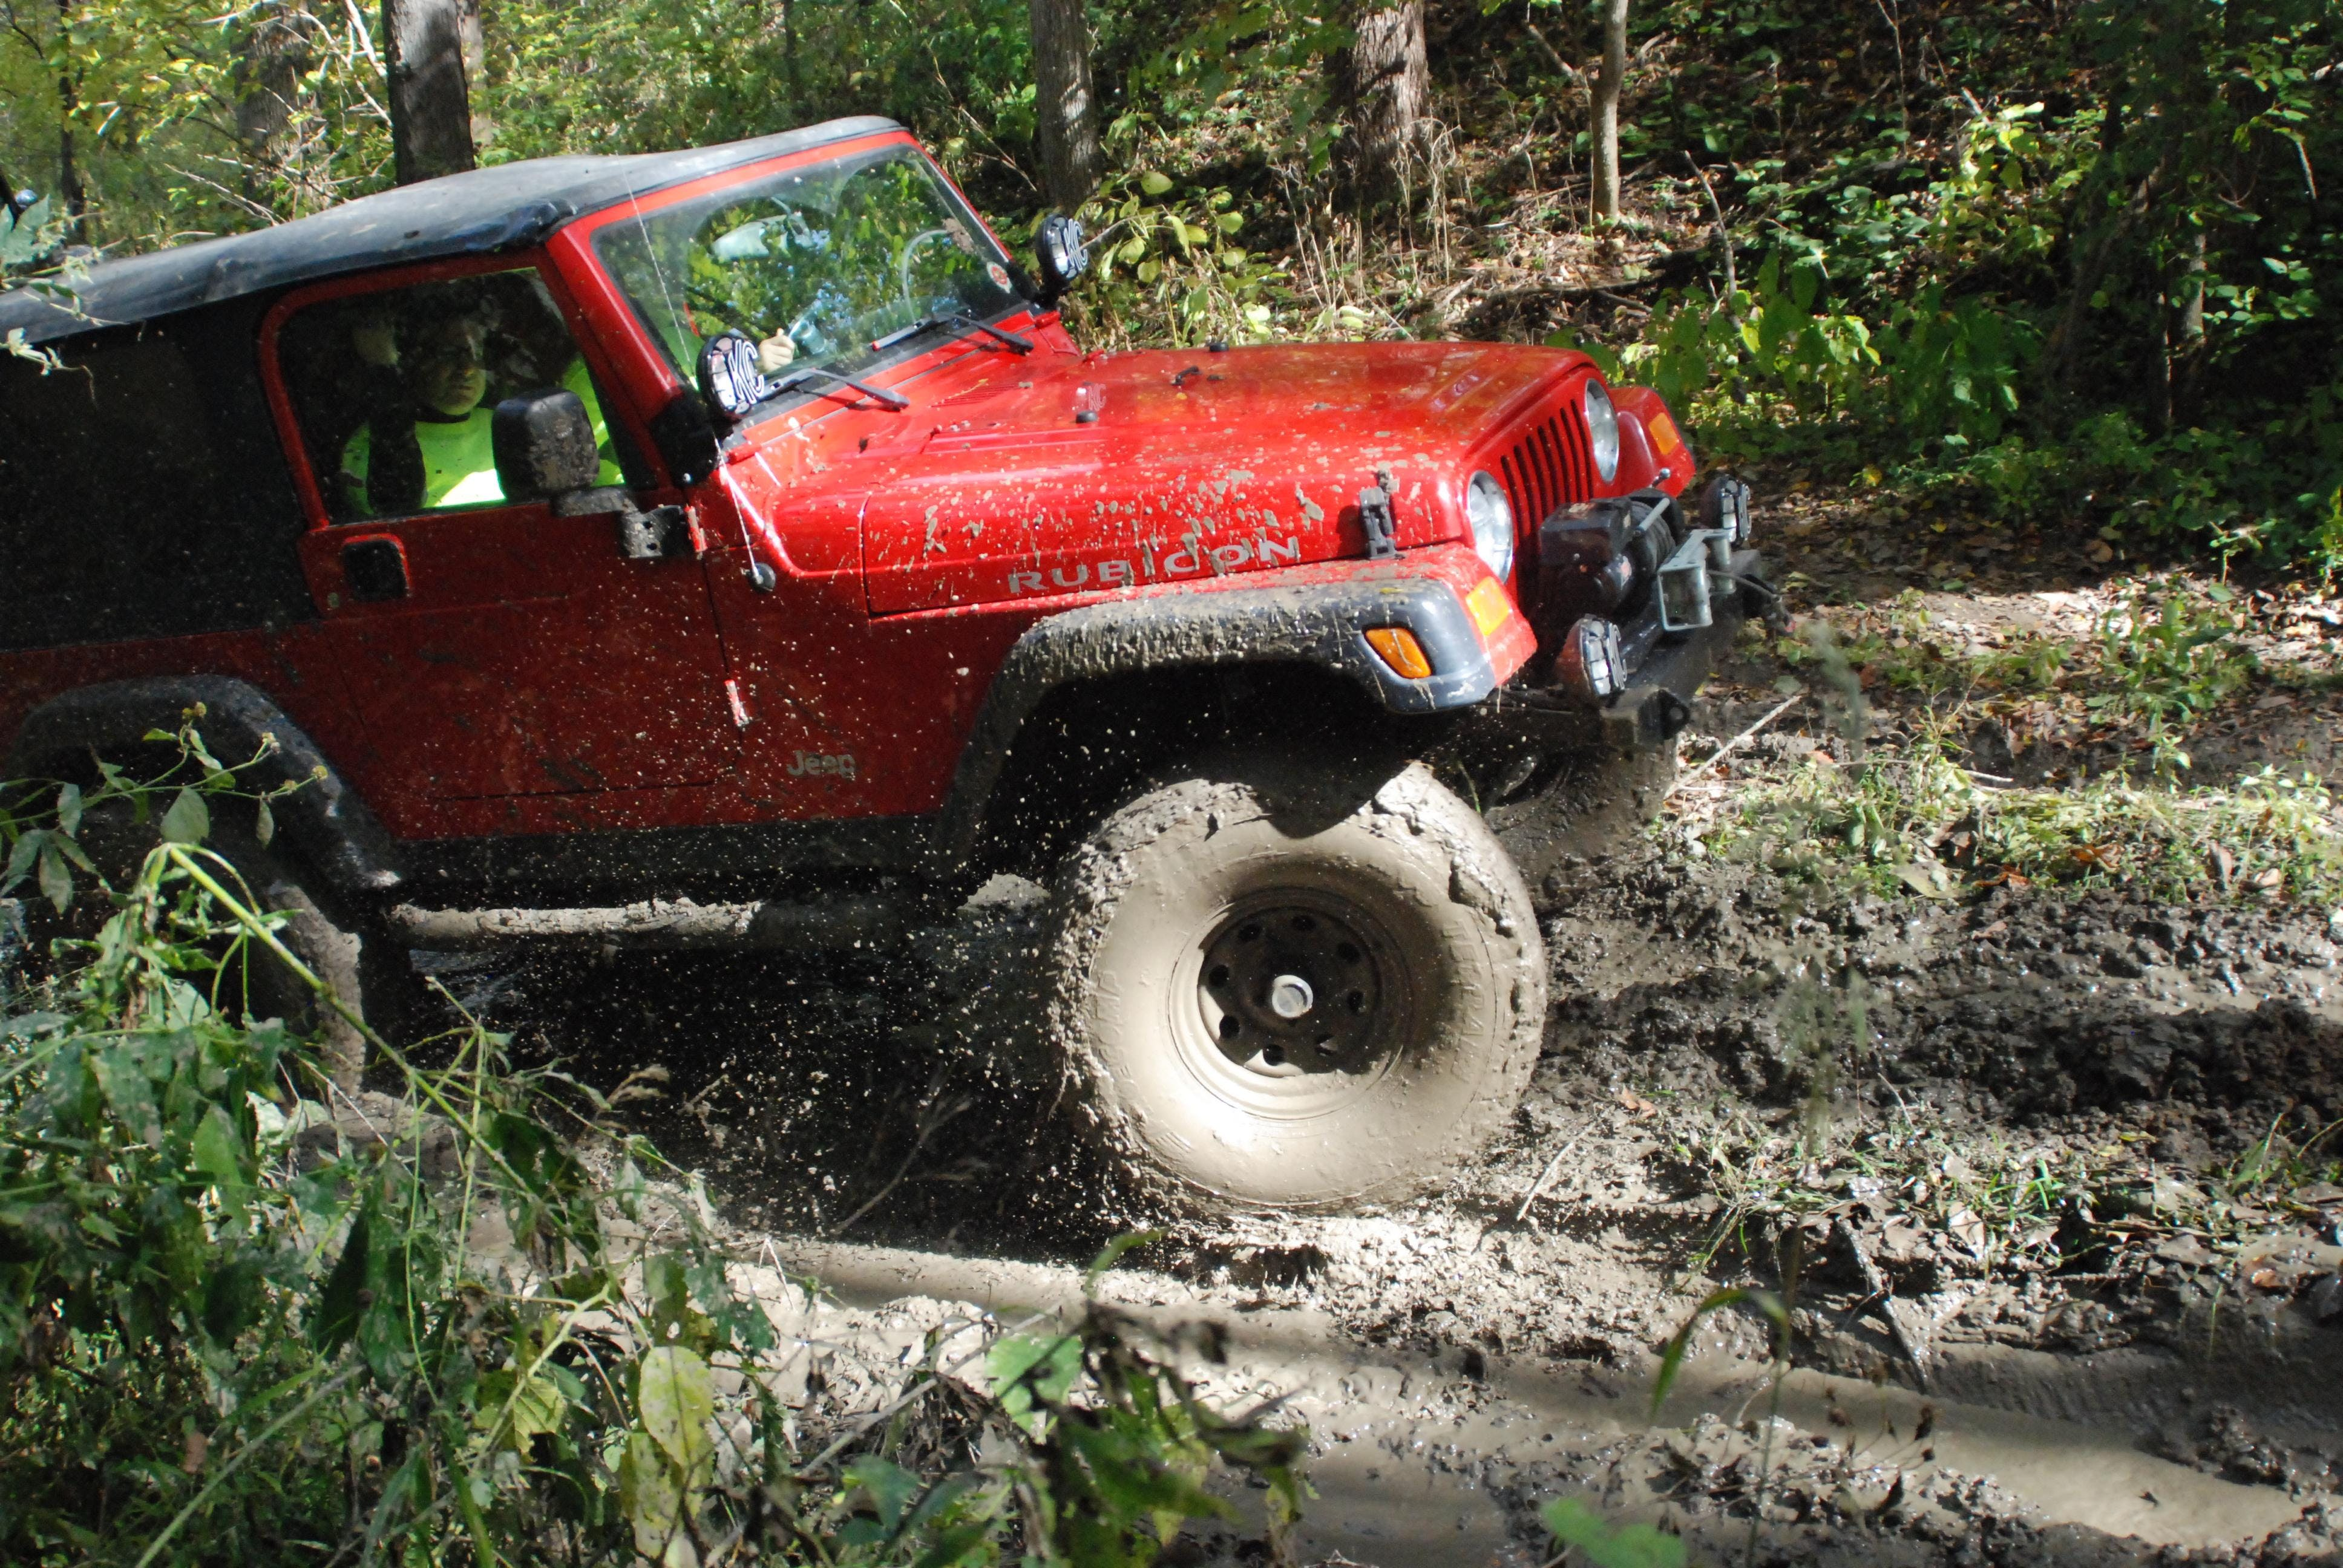 Jeep Trails June Jeep Event Kjf Offroad Trails And Kjf 101 Course June 16